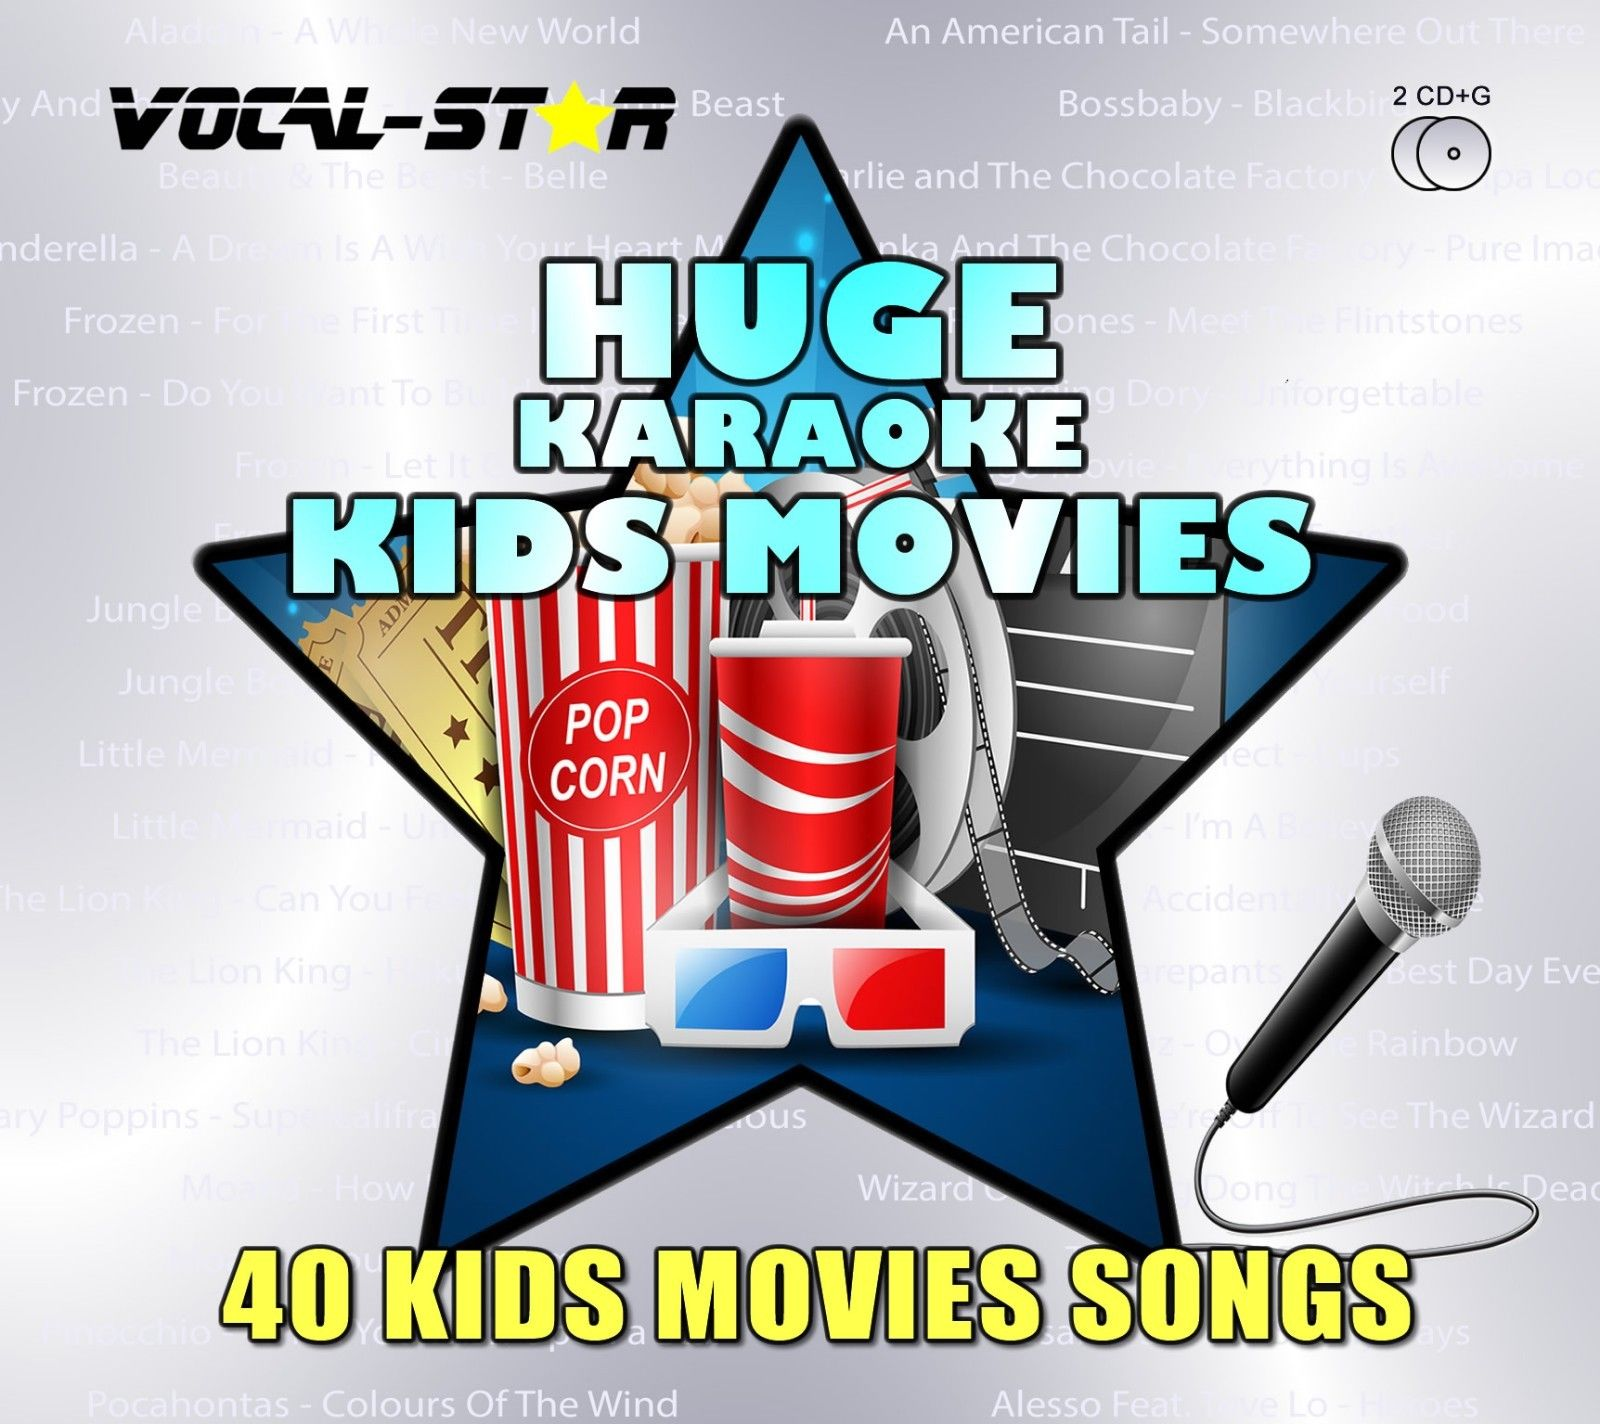 Vocal-Star Huge Karaoke Hits of Kids Movies - 40 Songs - 2 CDG Disc Set